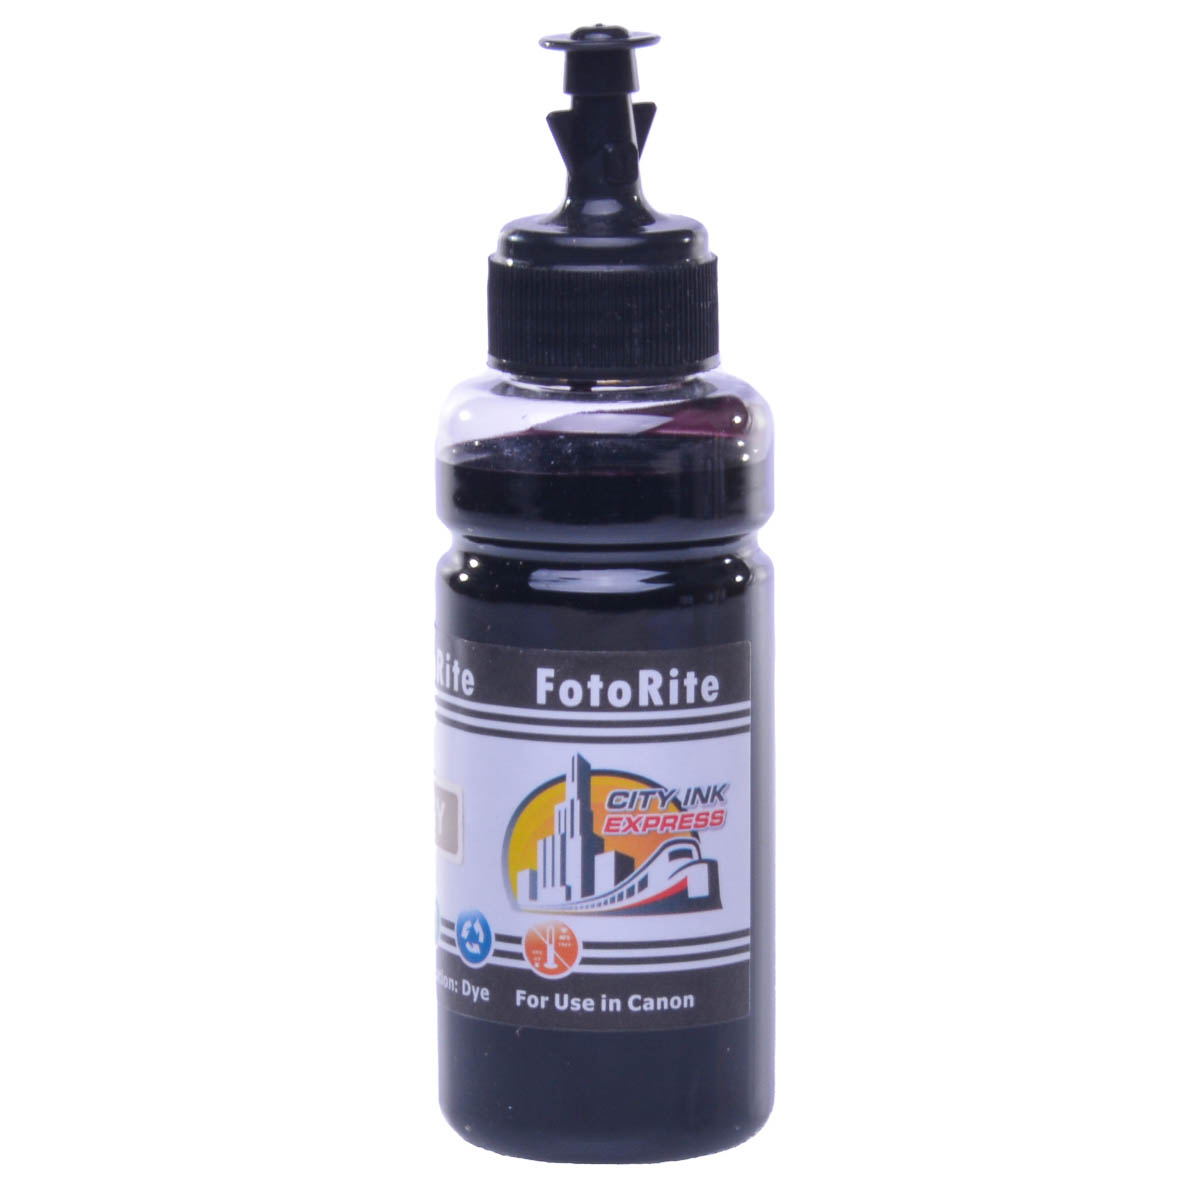 Cheap Grey dye ink replaces Canon Pixma MG7752 - CLI-571GY